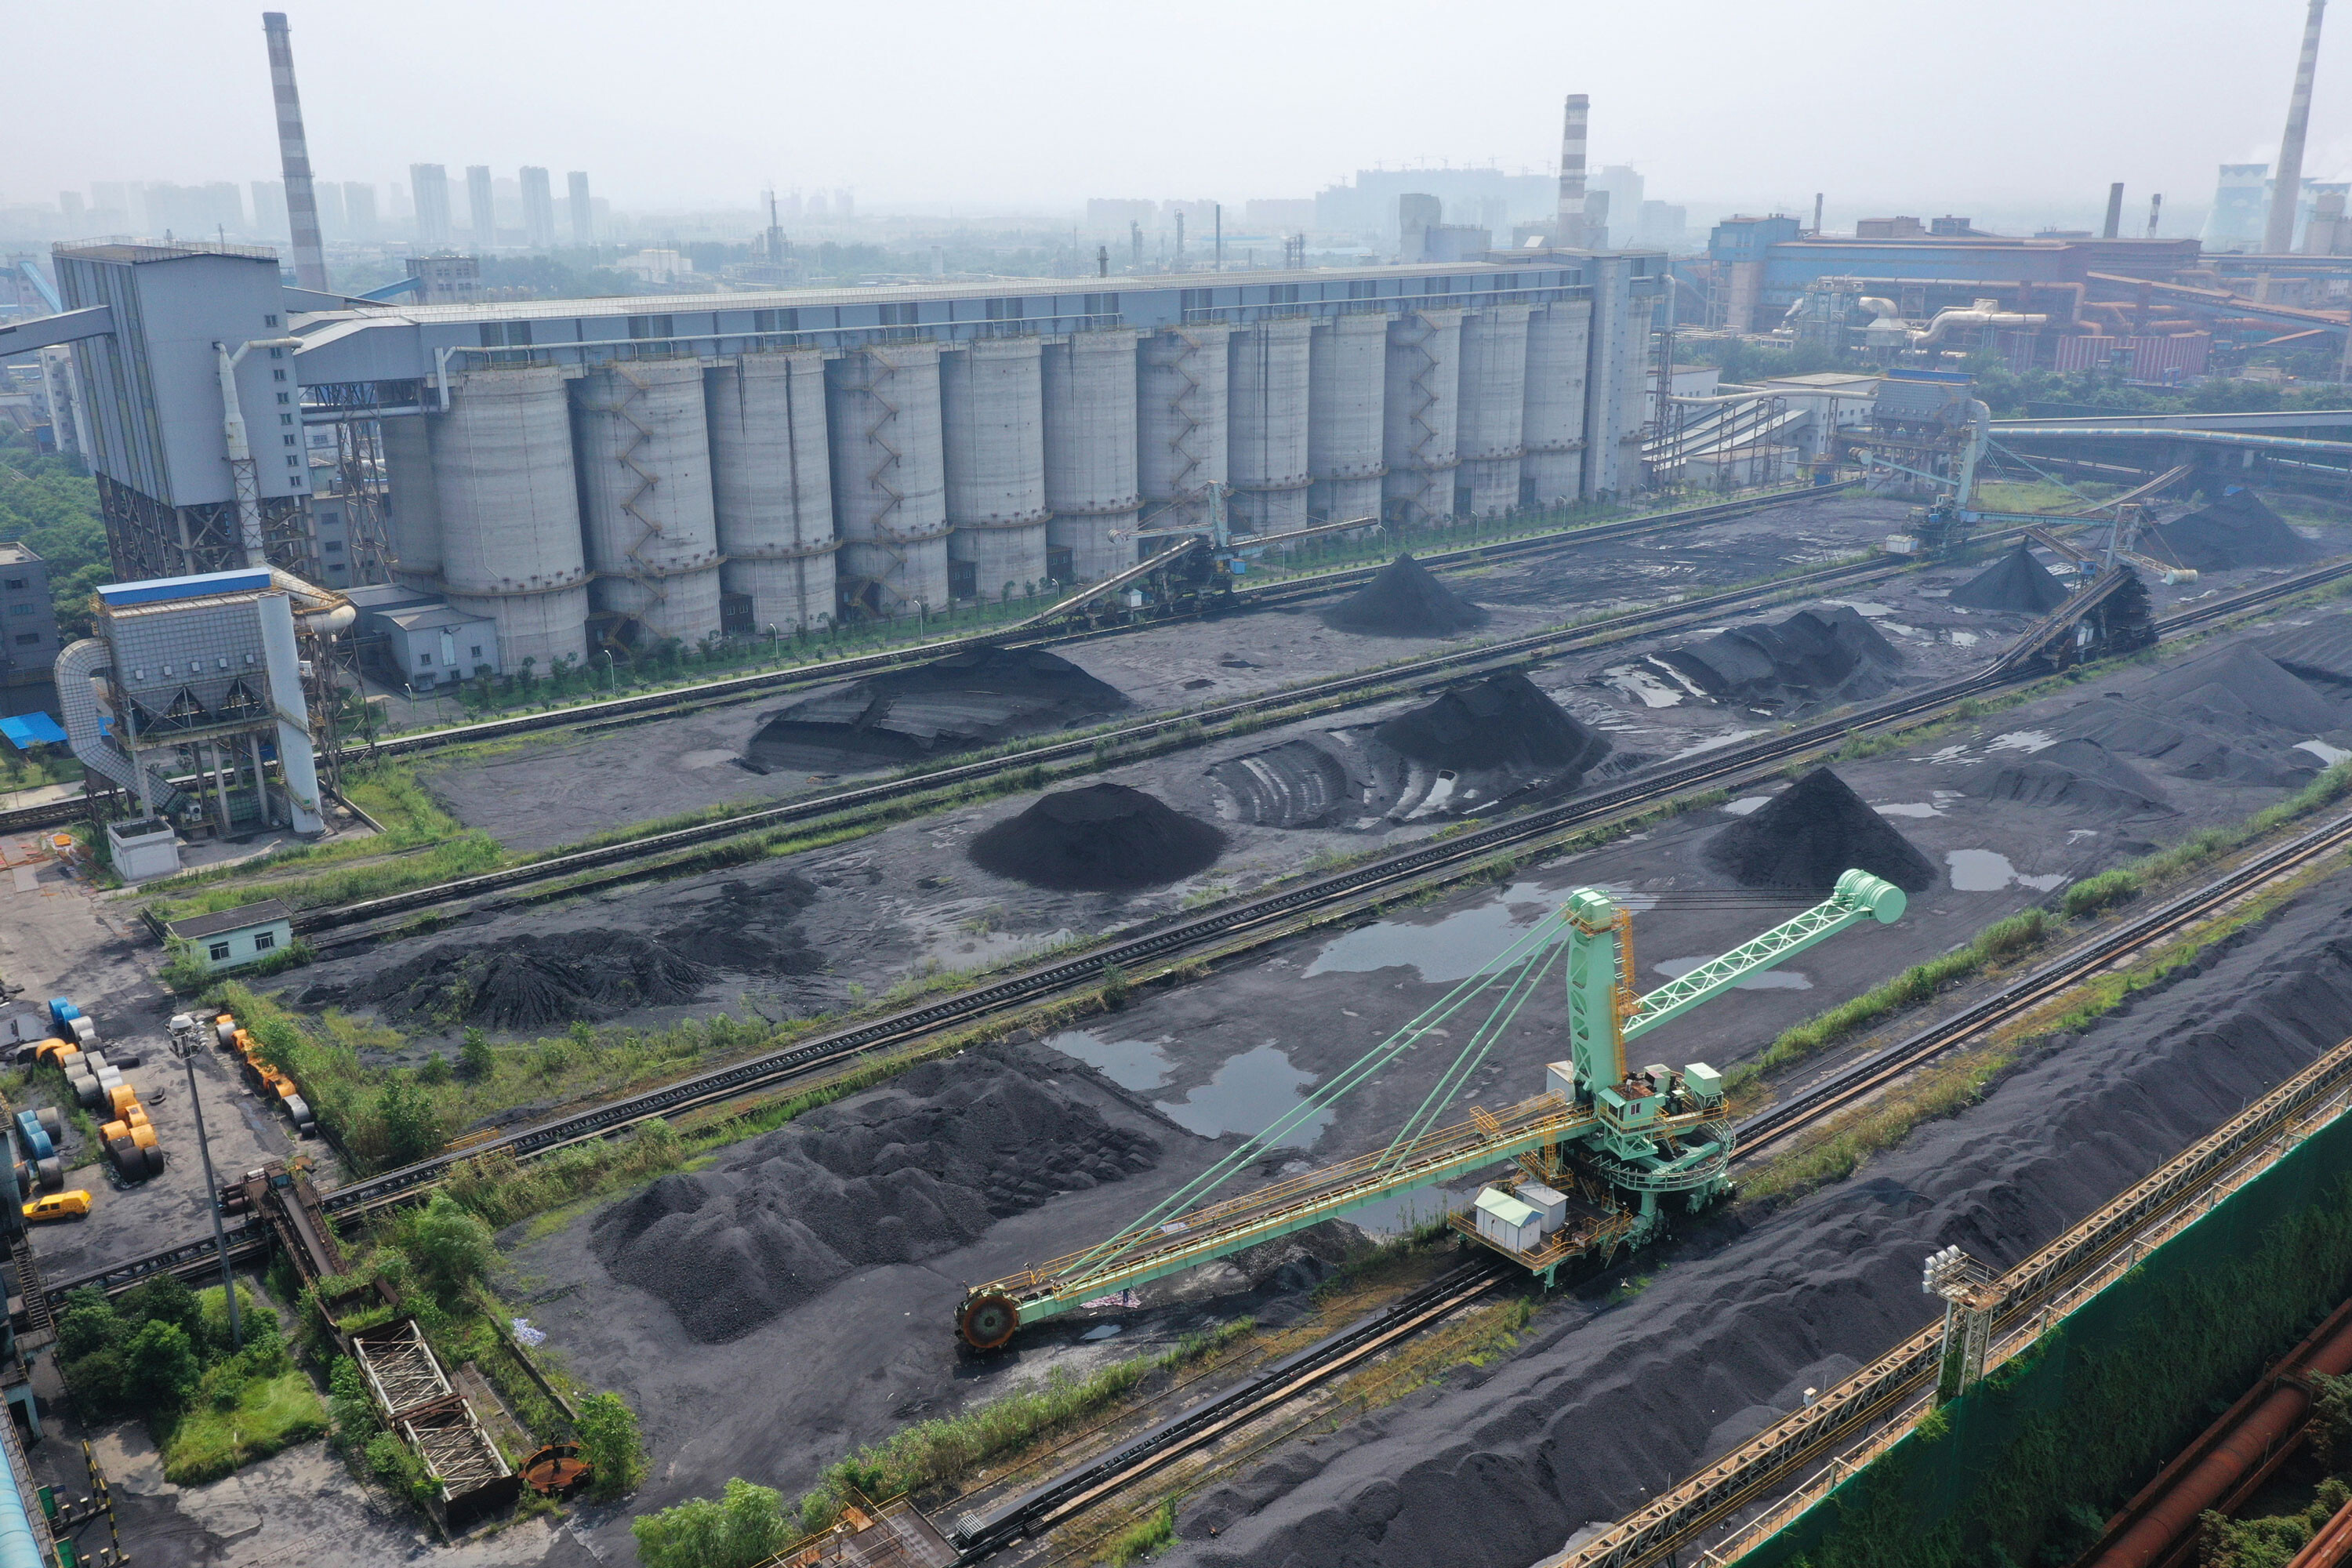 China and India face a deepening energy crunch